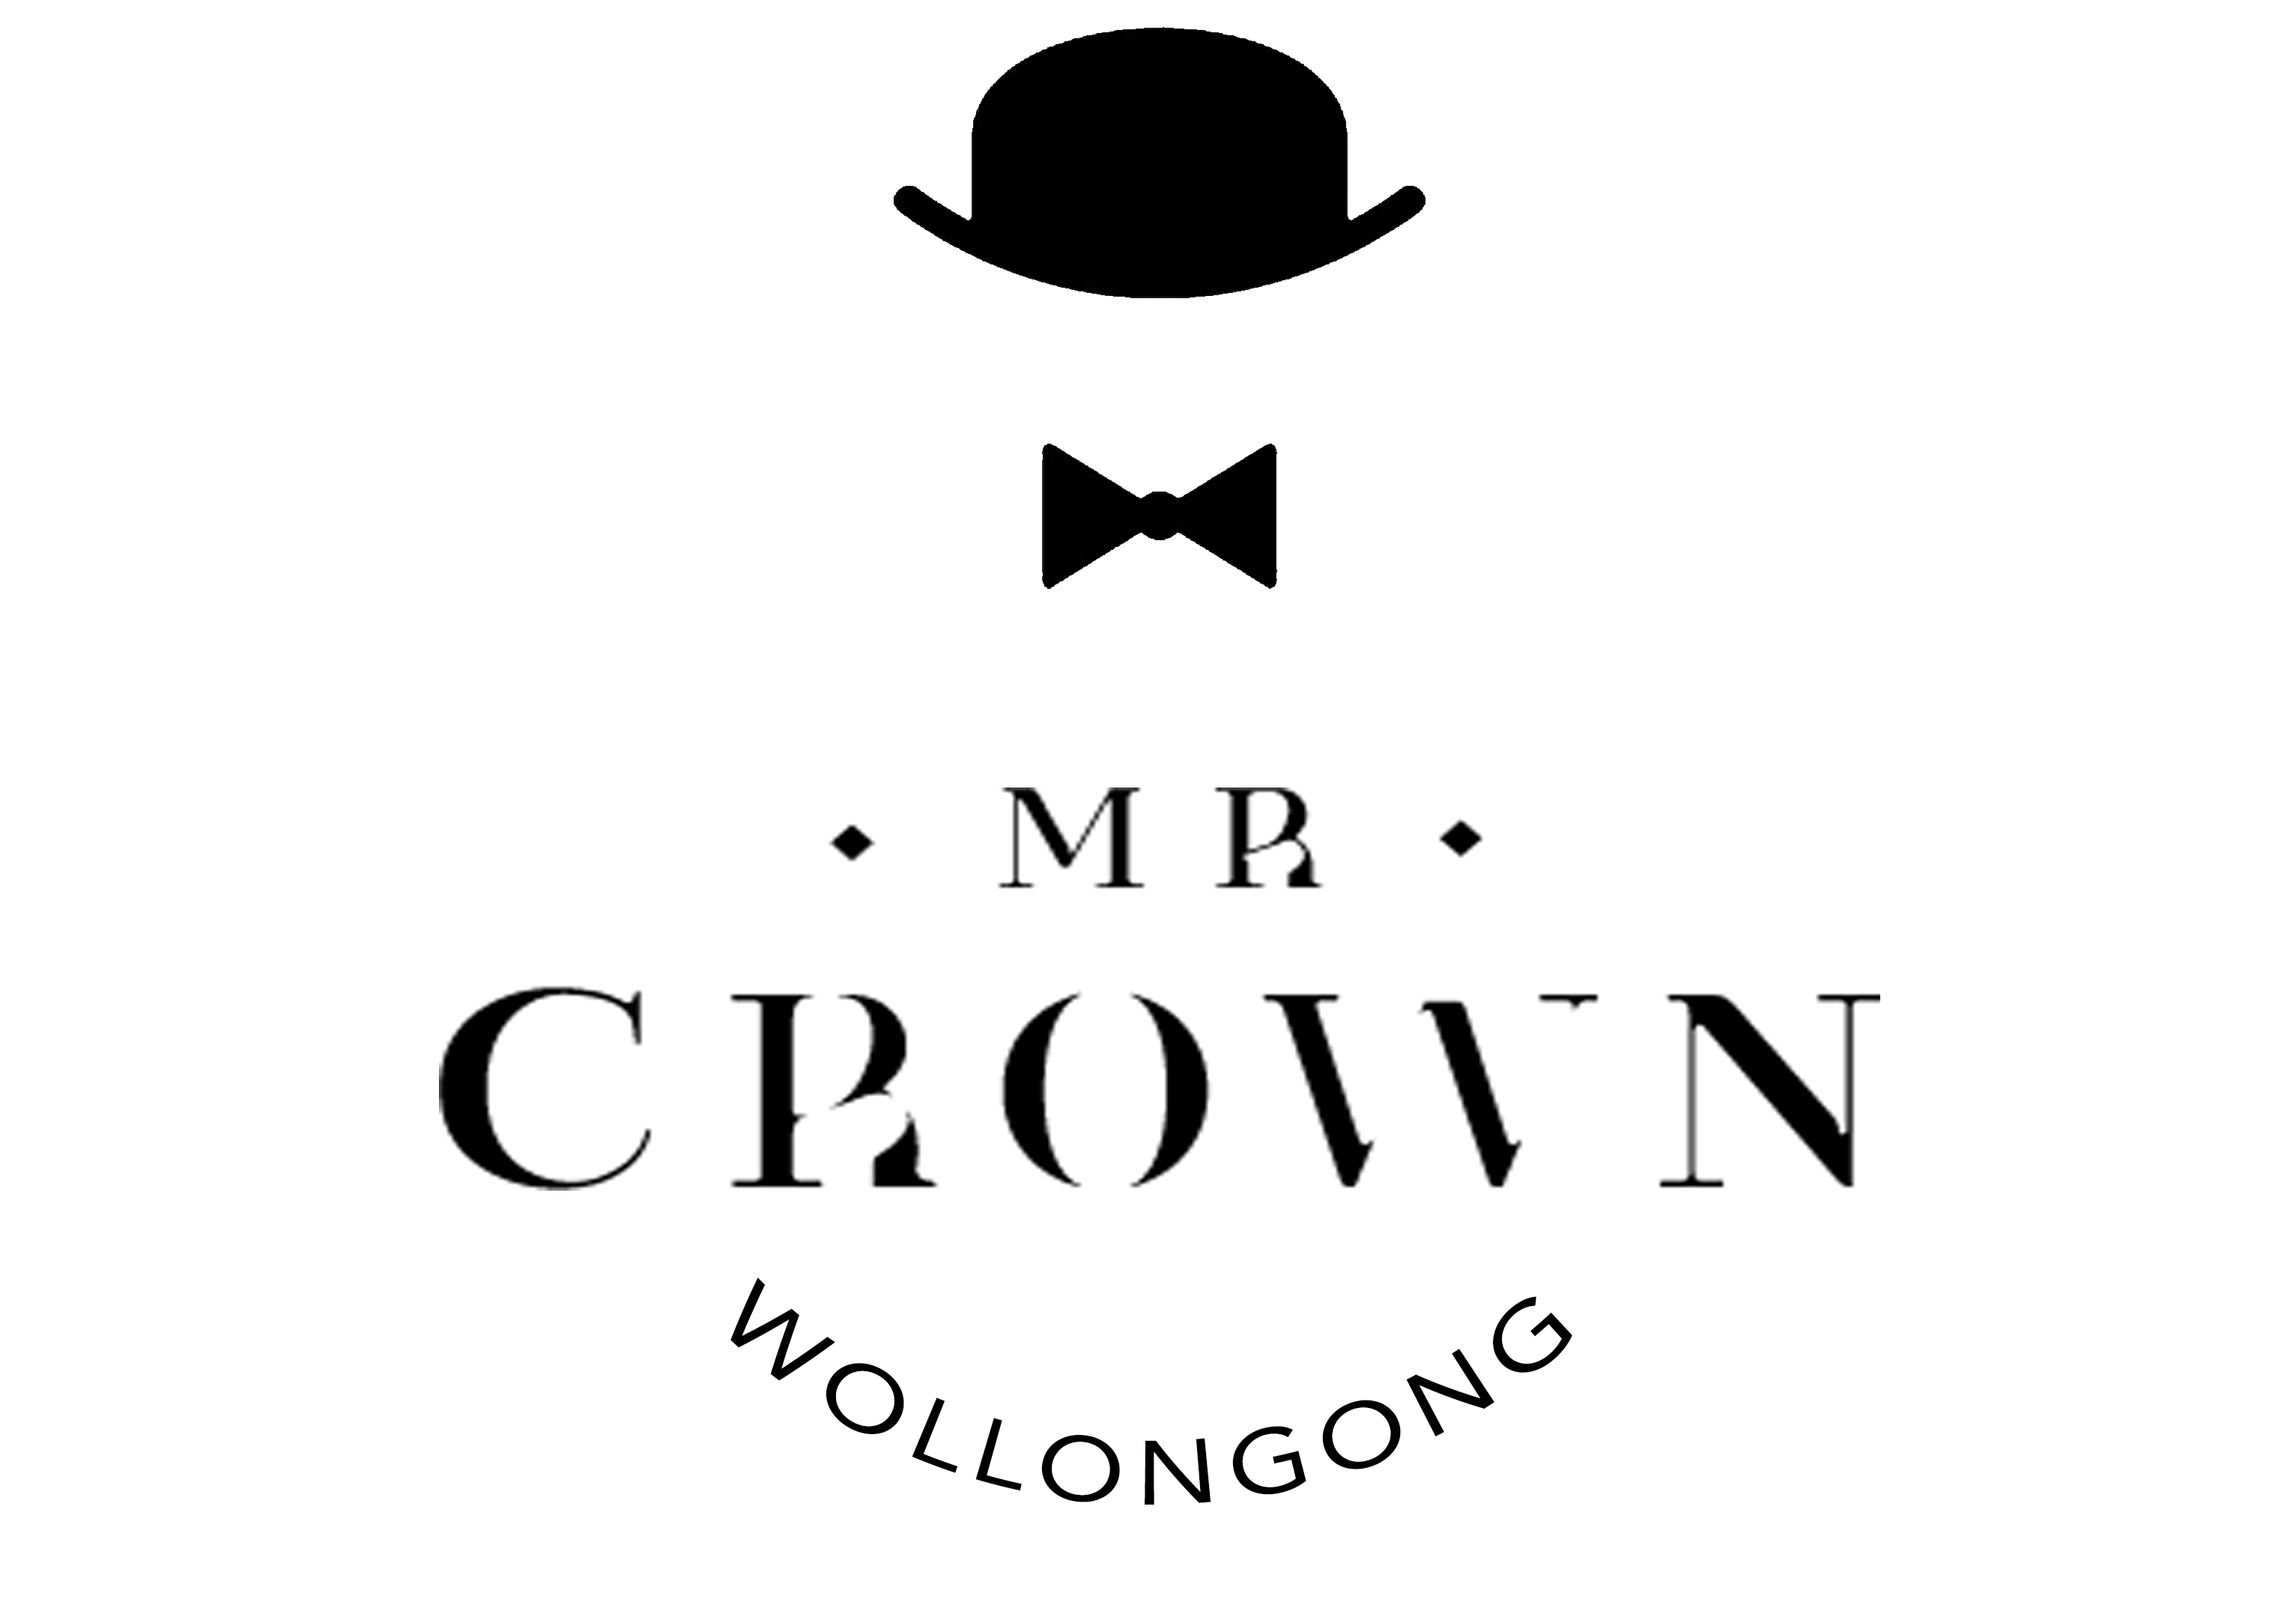 MR Crown Wollongong